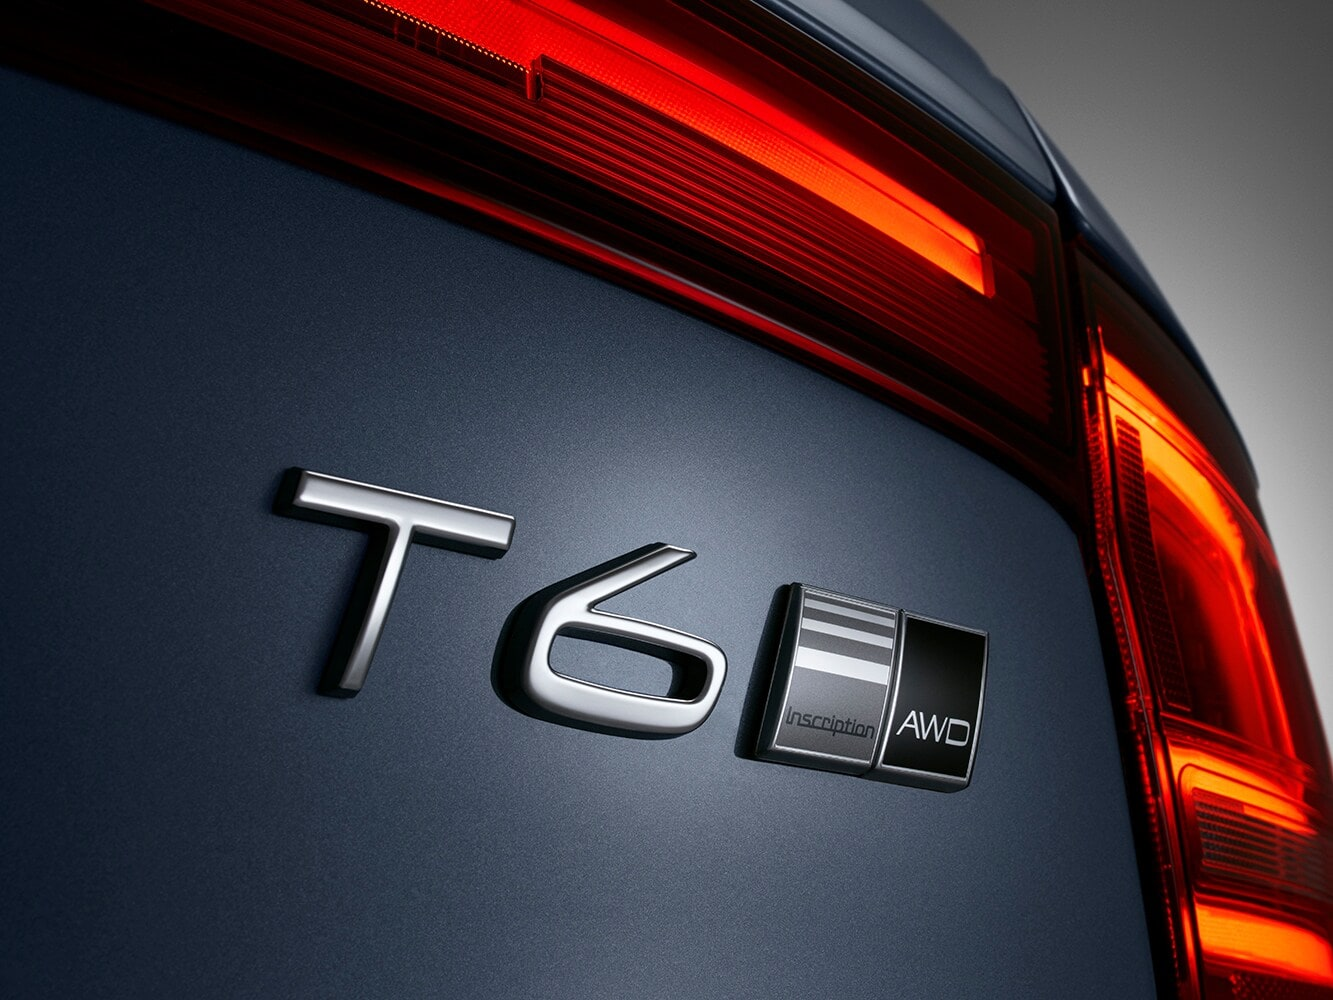 Close up detail of the T6 badge on a Volvo S90